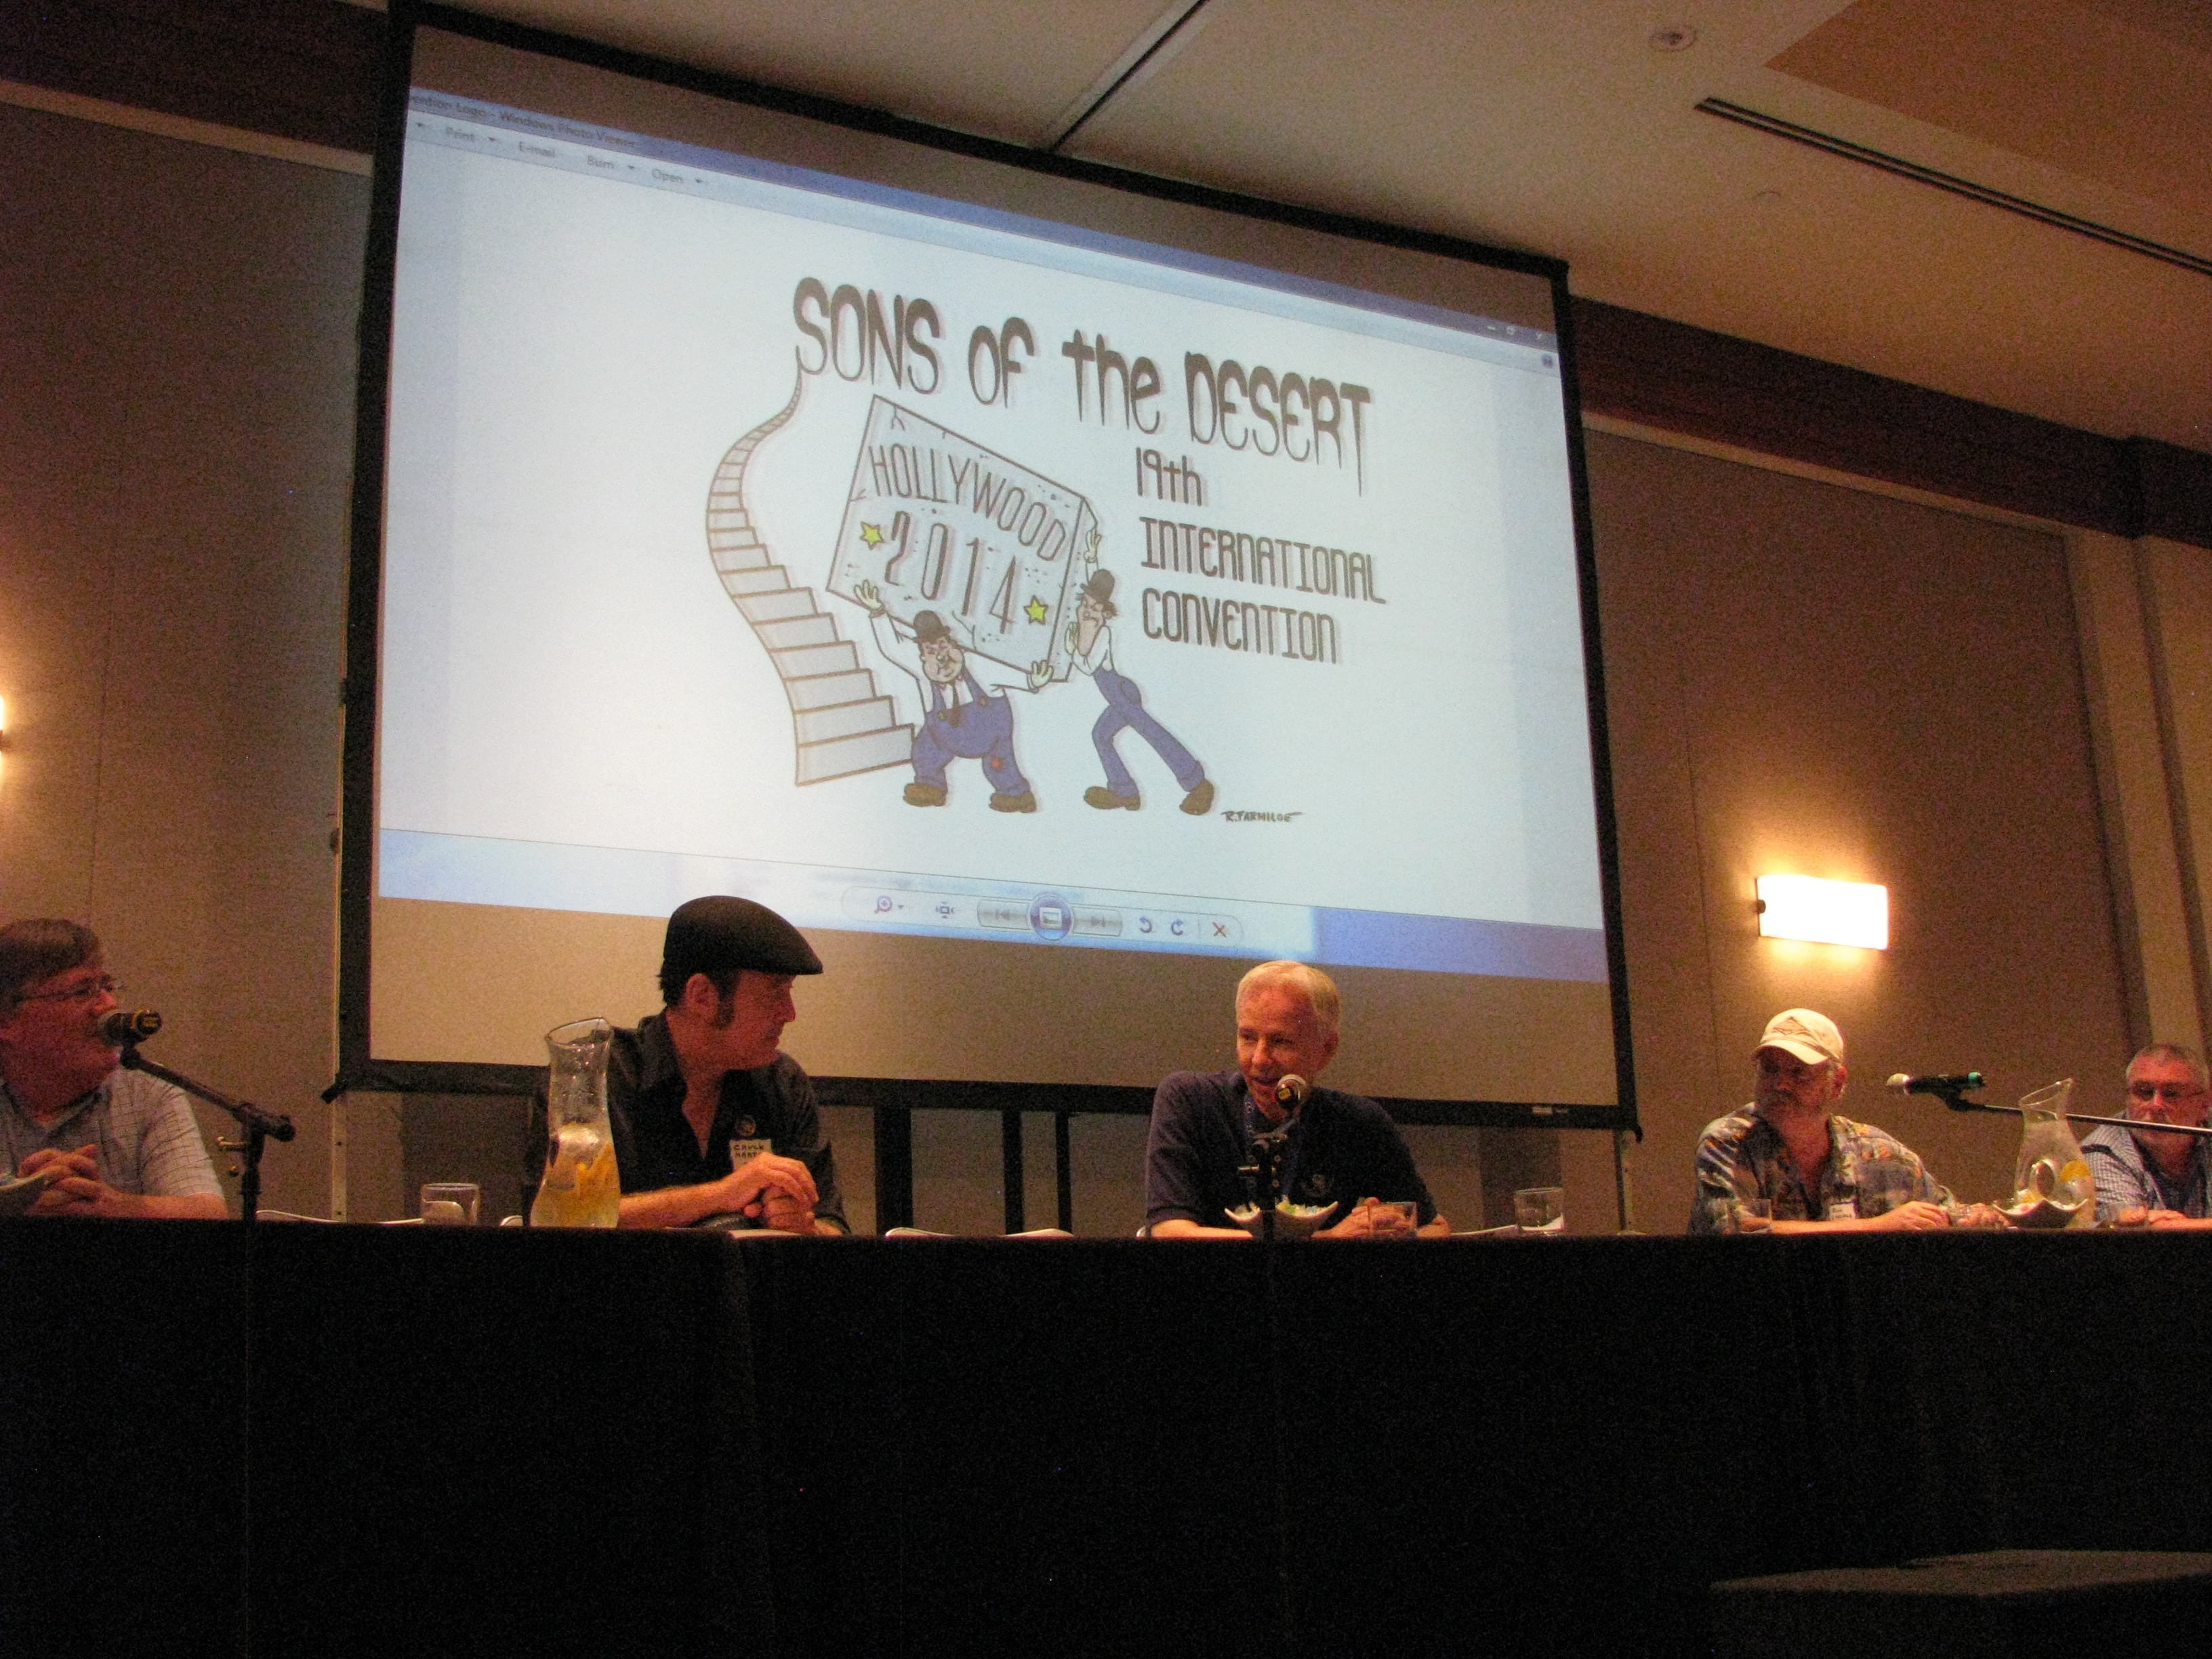 The Authors' Panel was the first event of the day.